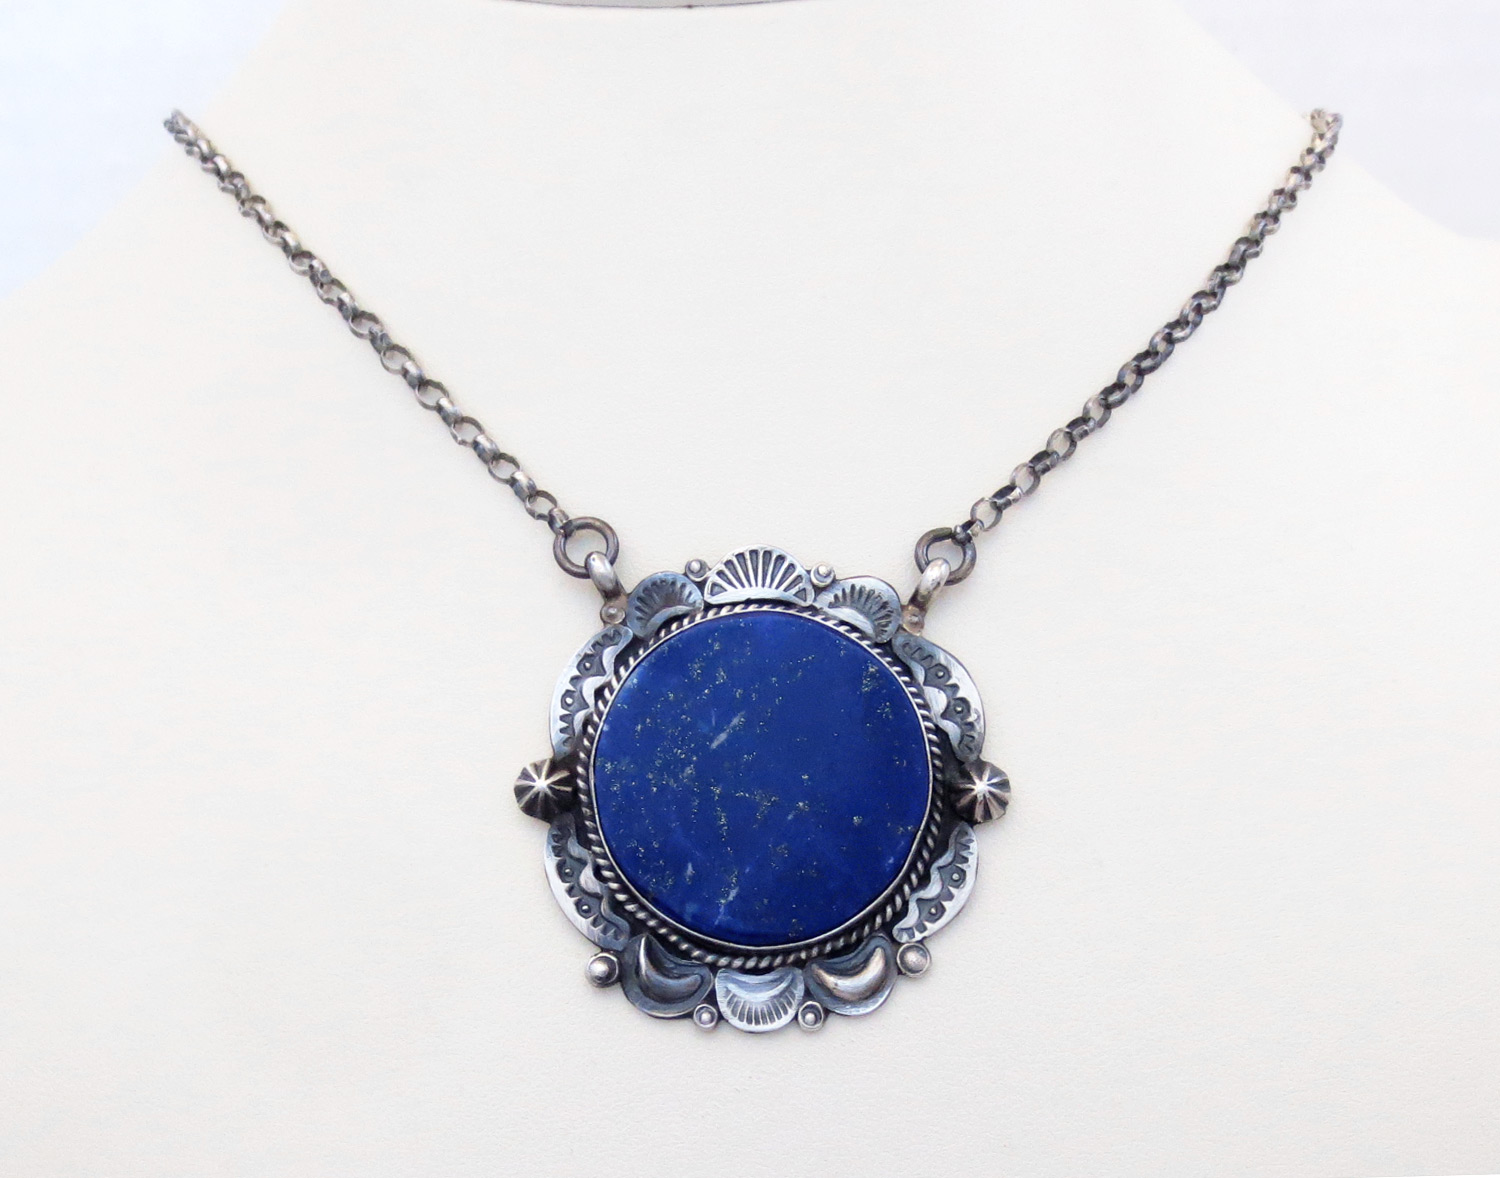 Lapis & Sterling Silver Pendant Necklace Native American Jewelry - 3870dt